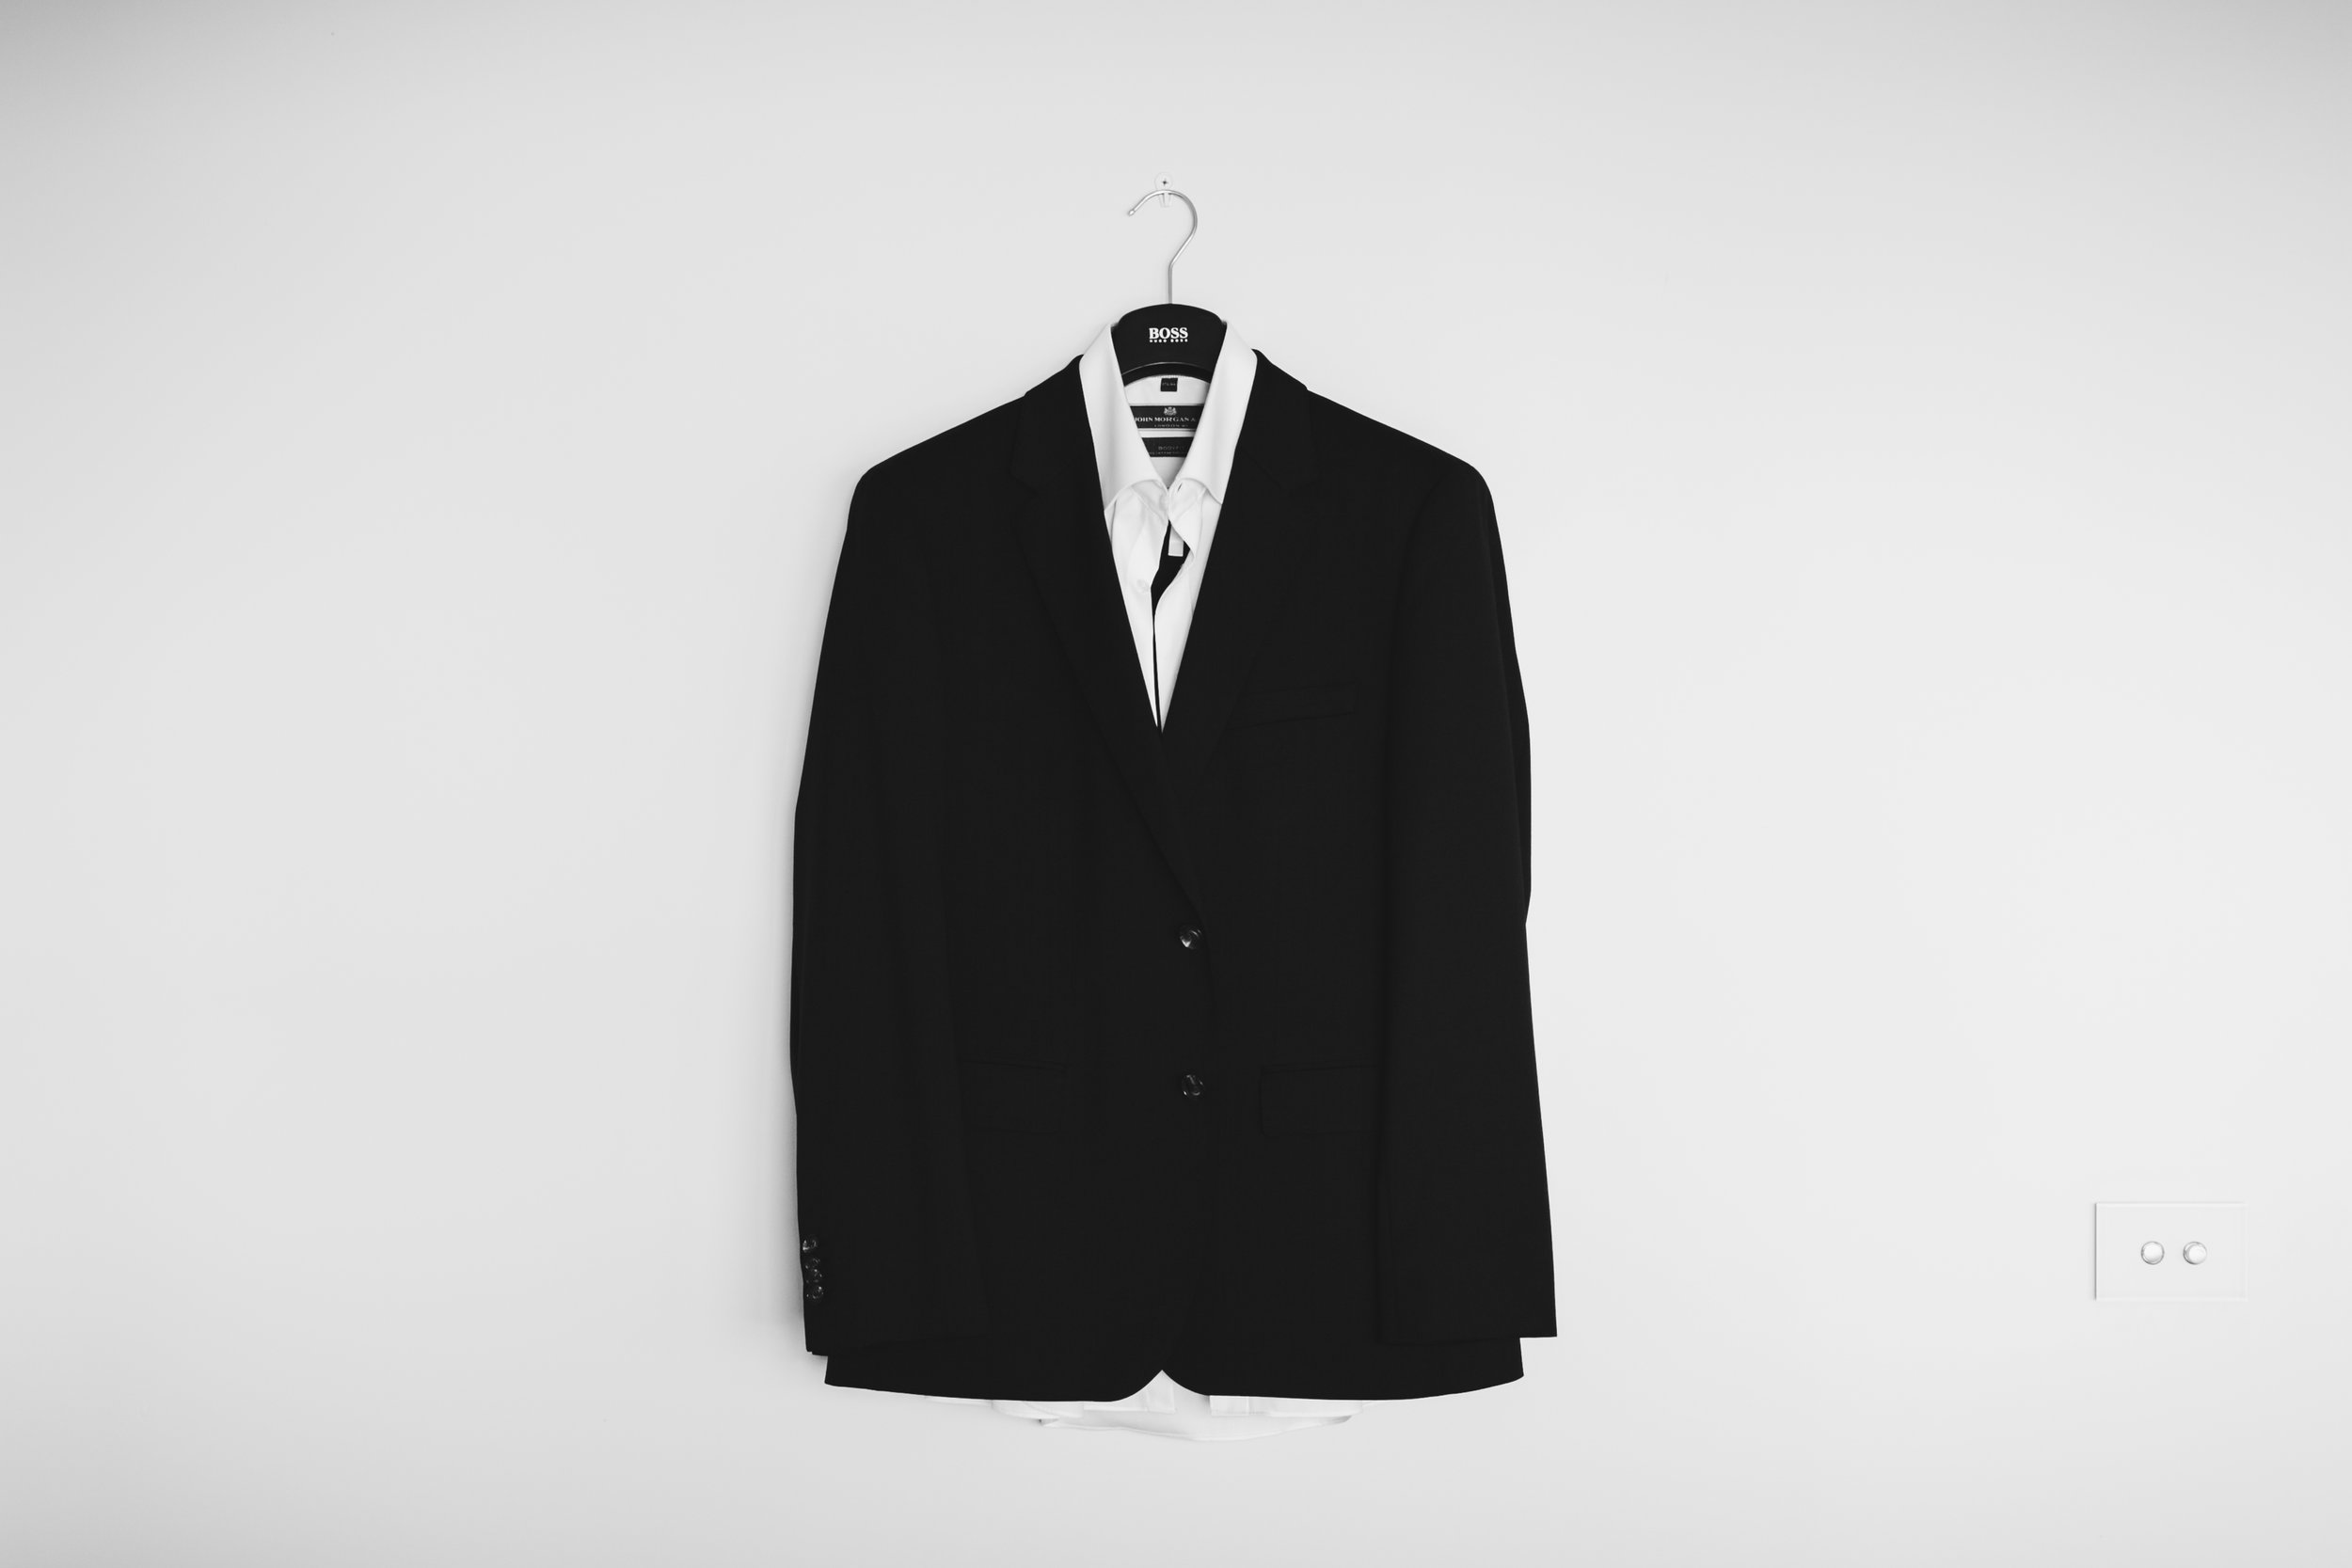 A black suit hanging from a hanger.